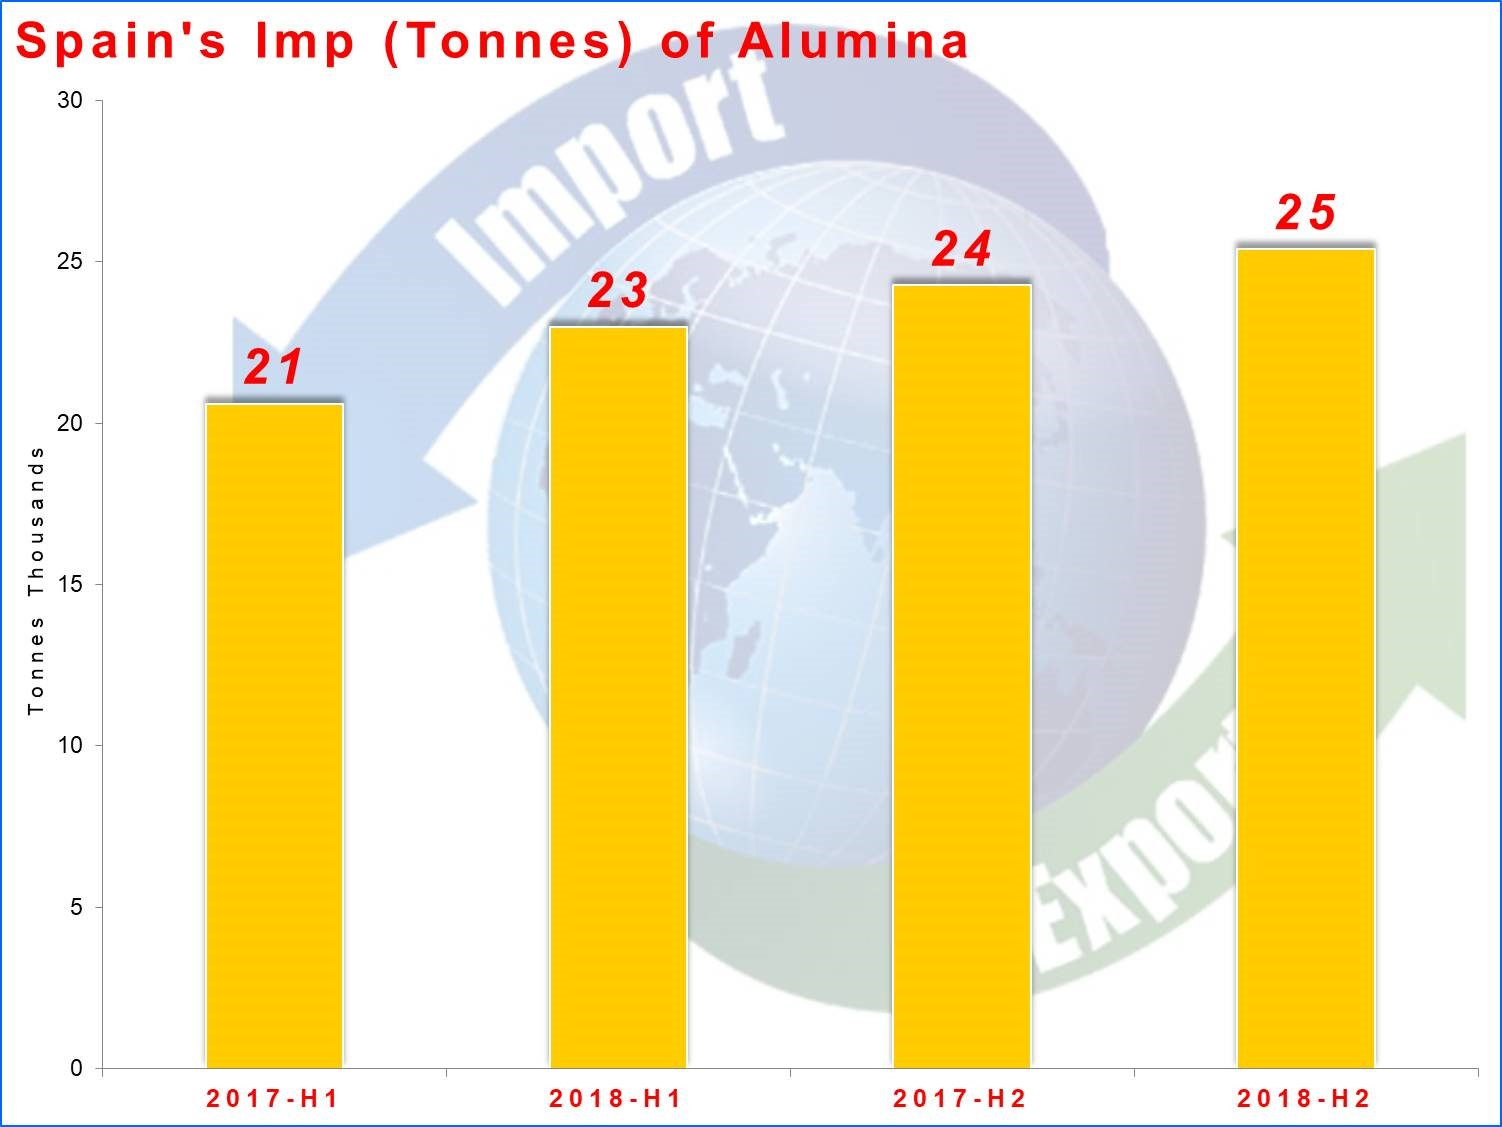 Data shows alumina import by Spain to grow in H2 2018